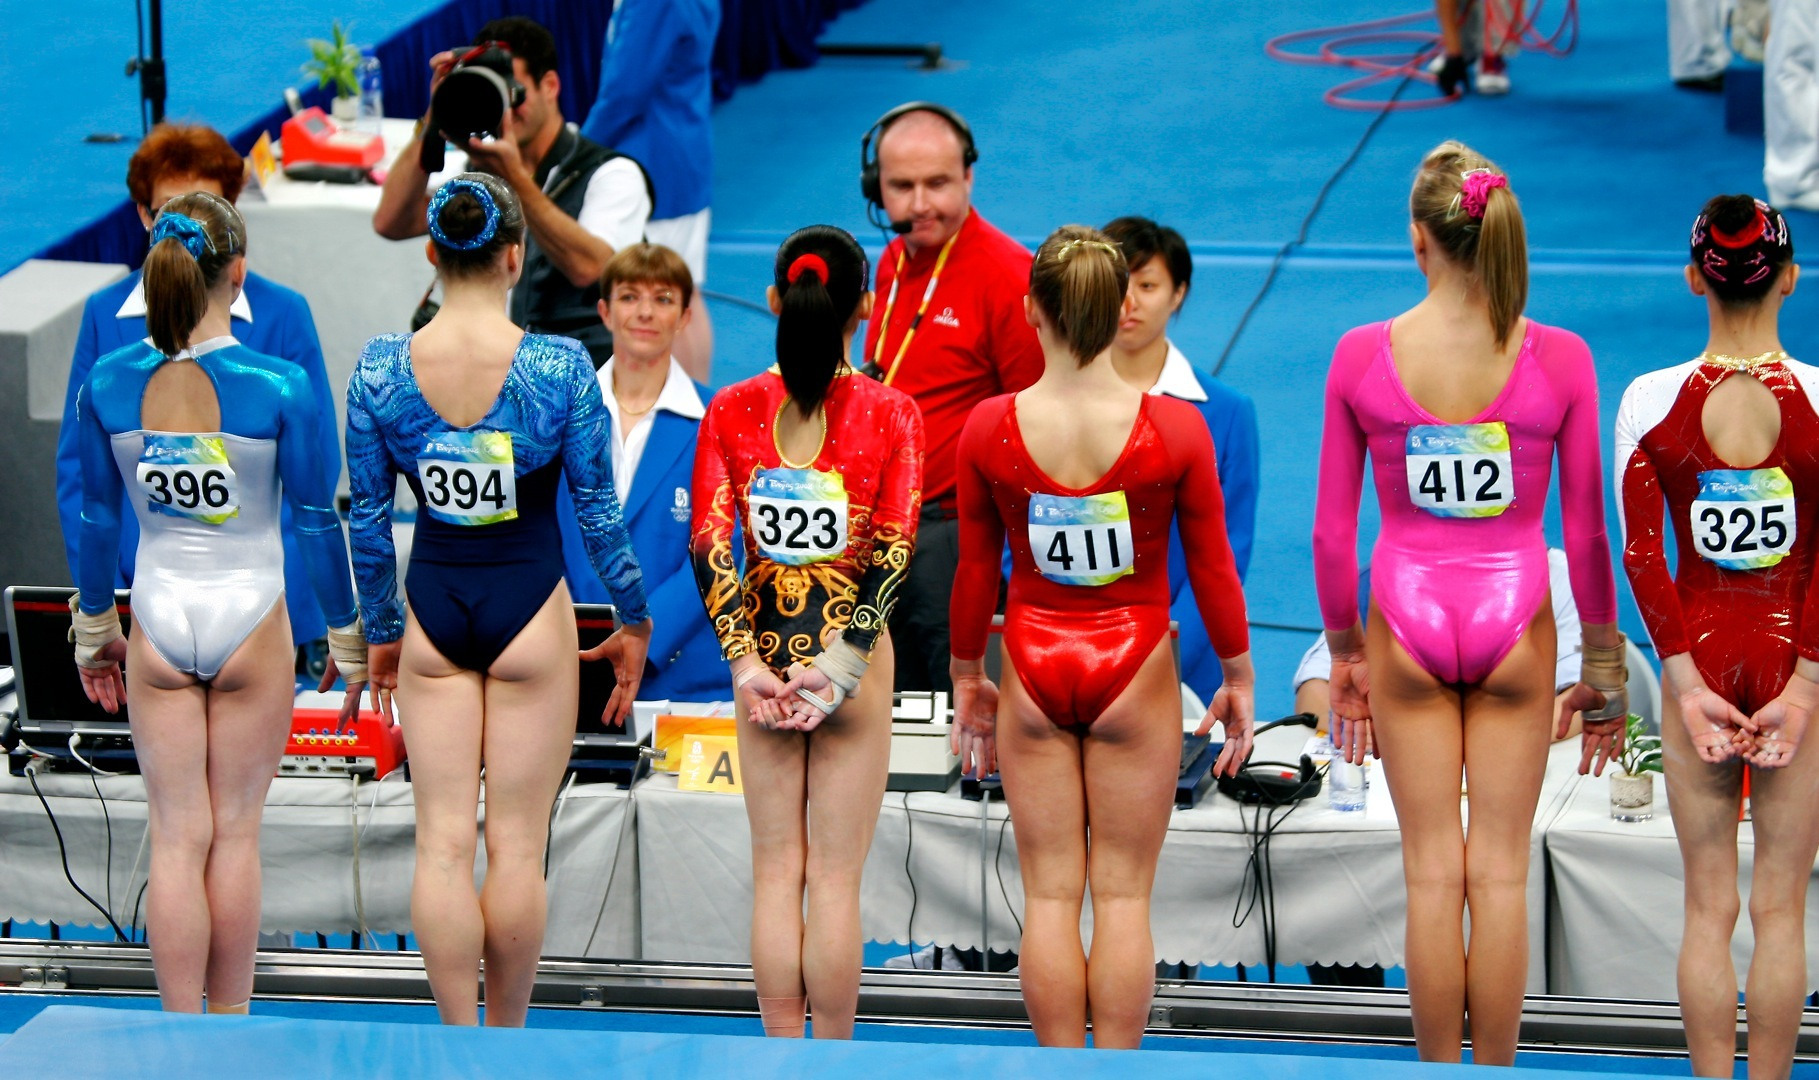 The Top 10 Hottest Female Gymnasts of All-Time